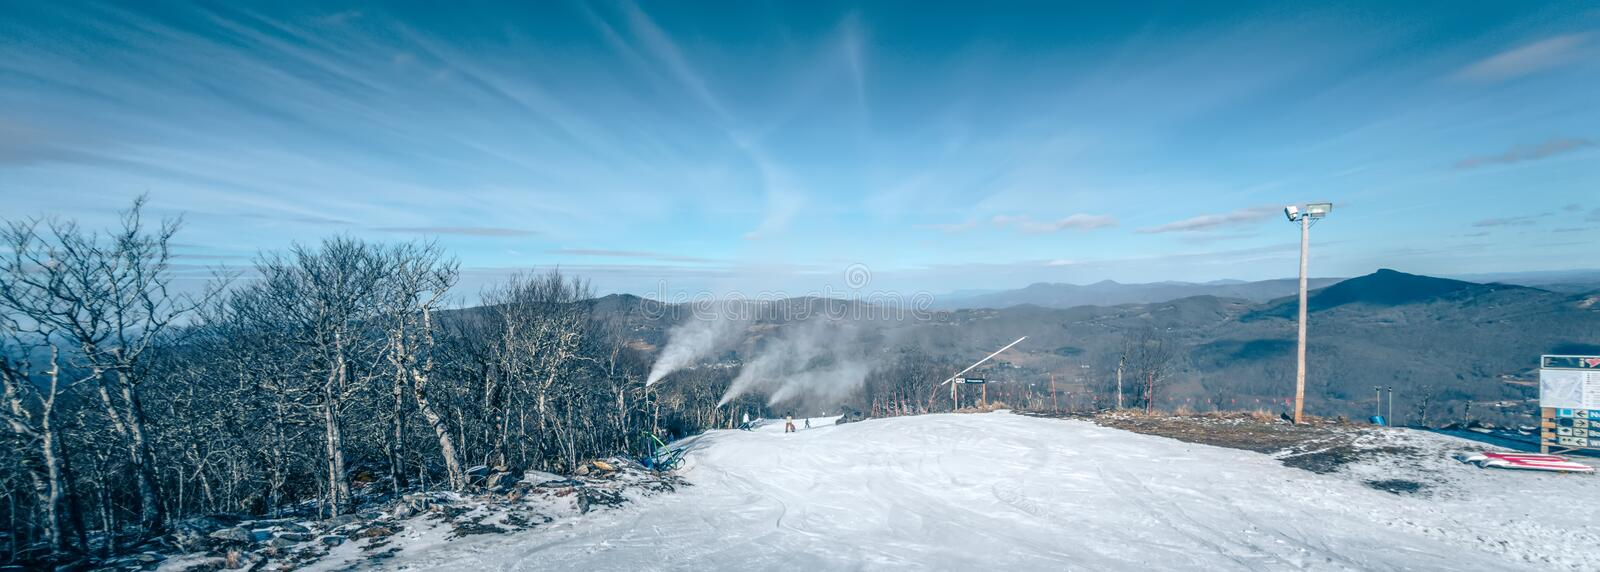 Scenic views around sugar mountain ski resort in north carolina. Mountains royalty free stock photography